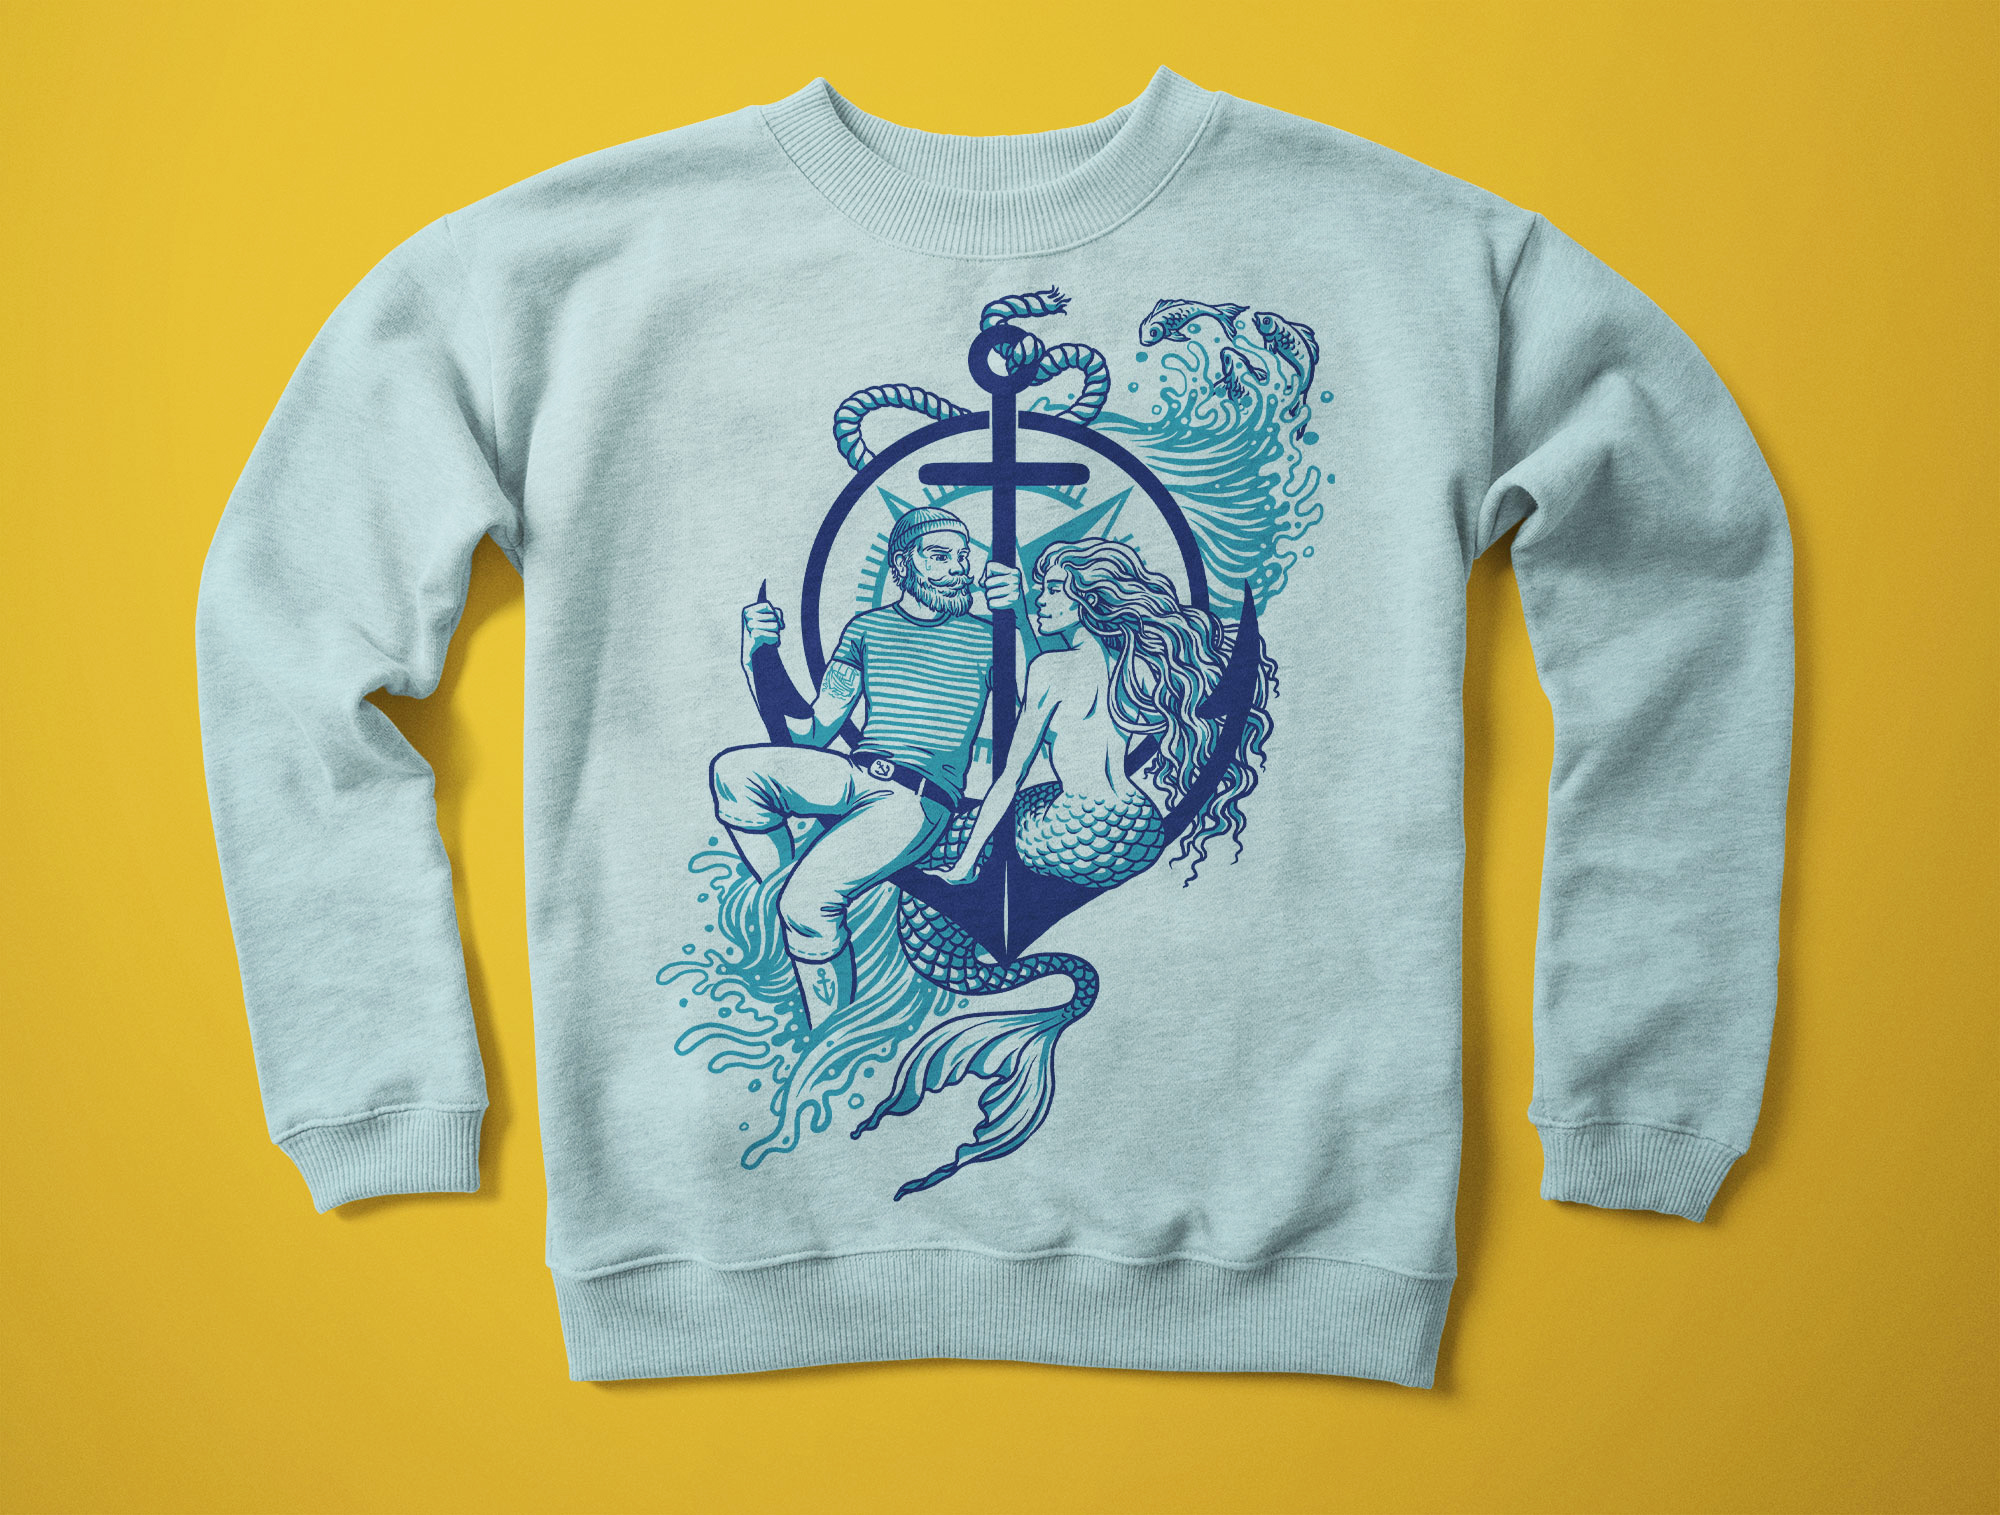 mermaid-sweatshirt-2.jpg